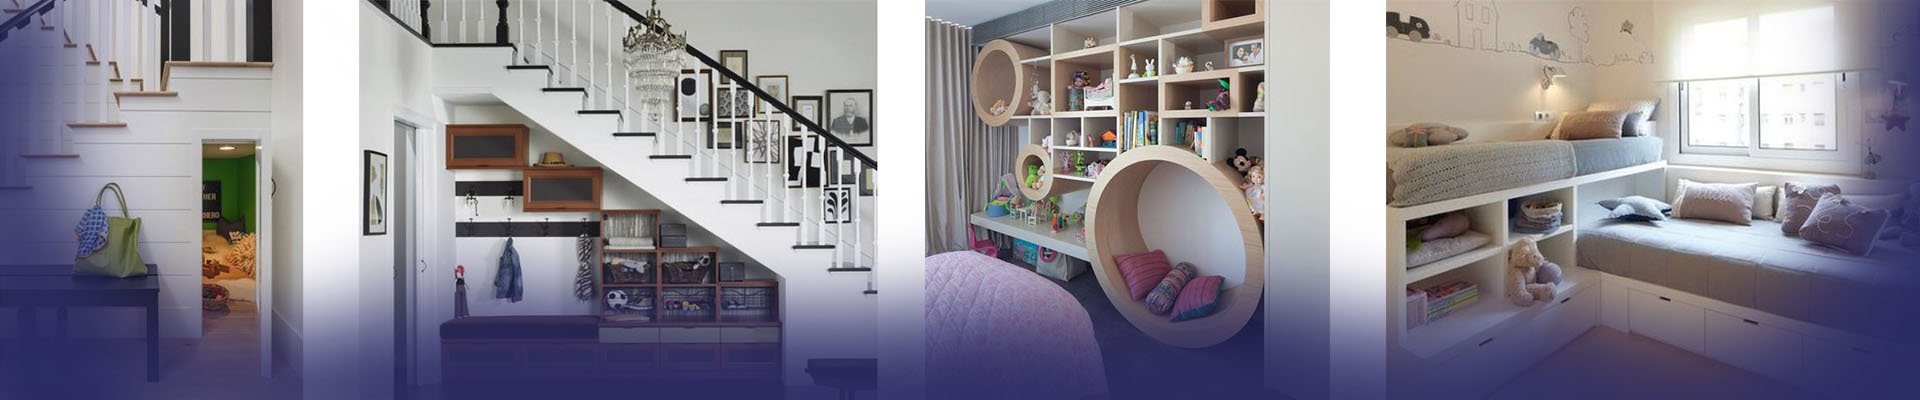 Storage Blog Hallmark Homes Canterburys design and build specialist Internal Image - Changing the perception of storage... Can we do it?